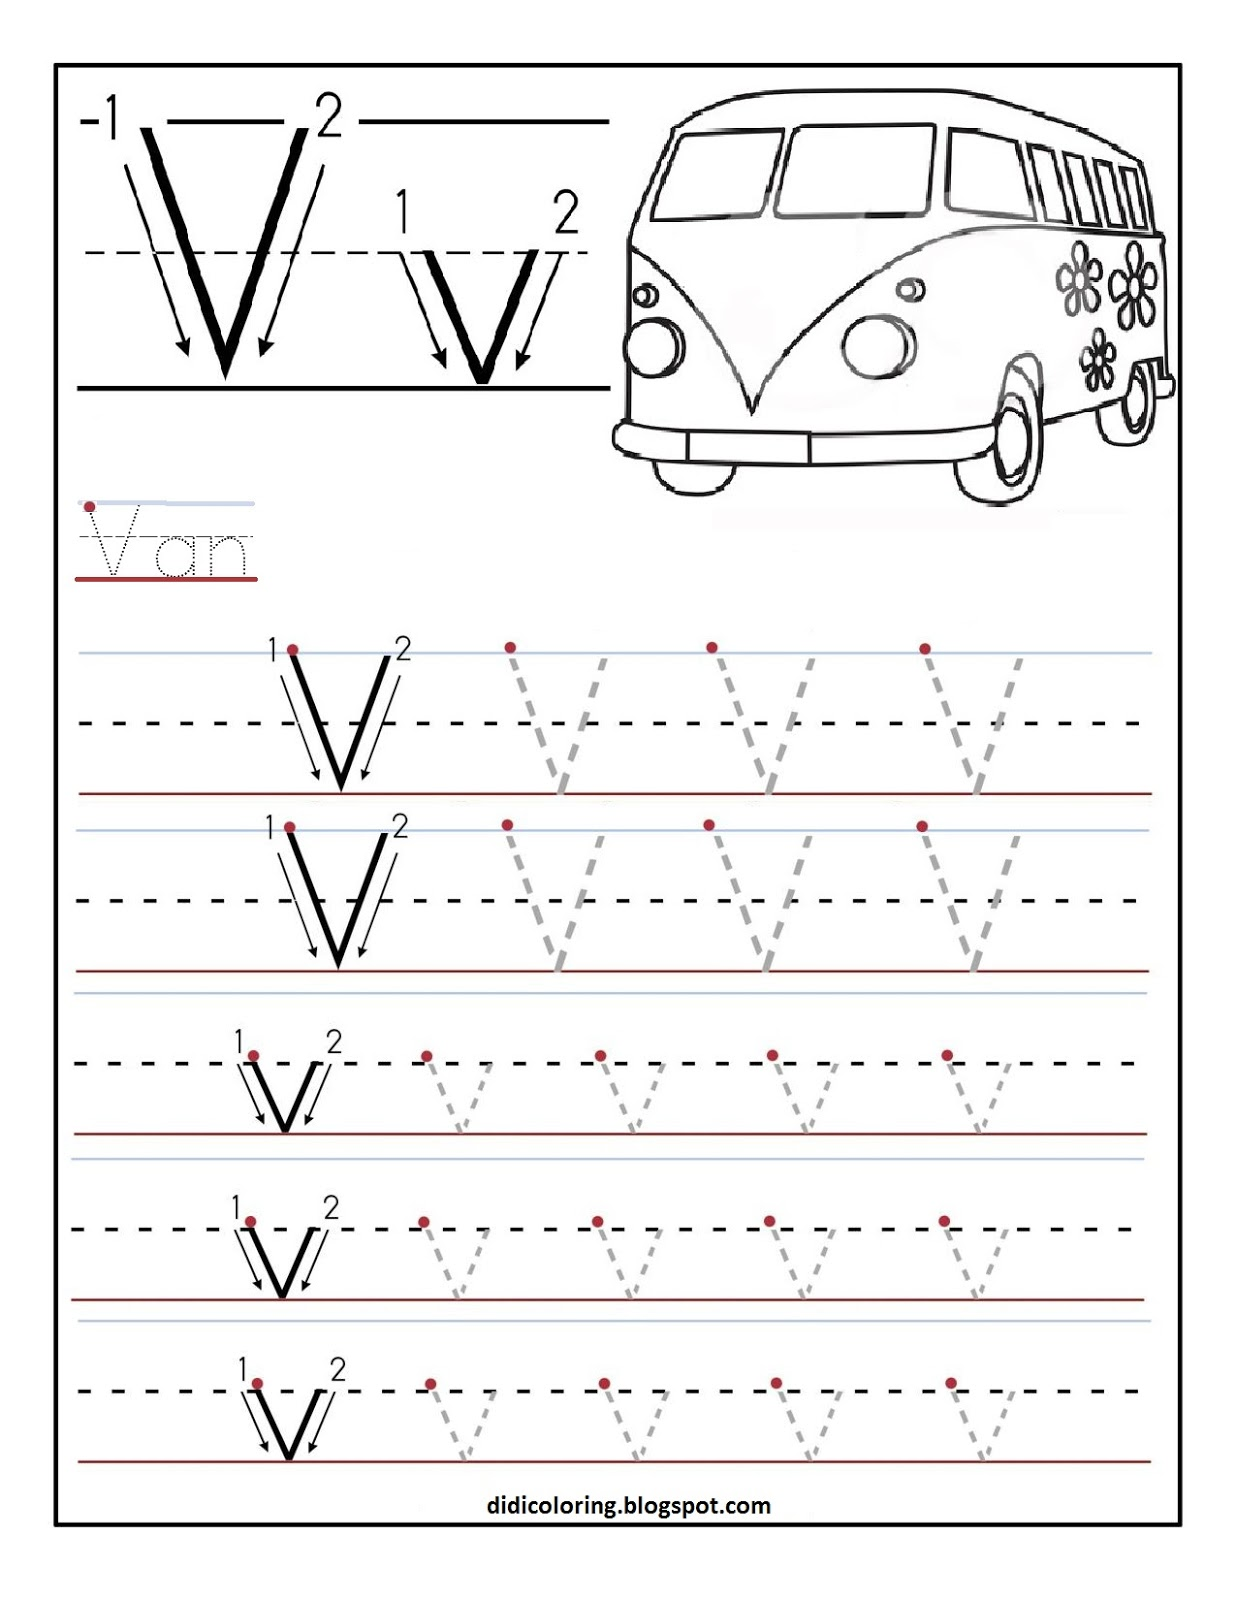 Free Printable Worksheet Letter V For Your Child To Learn And Write